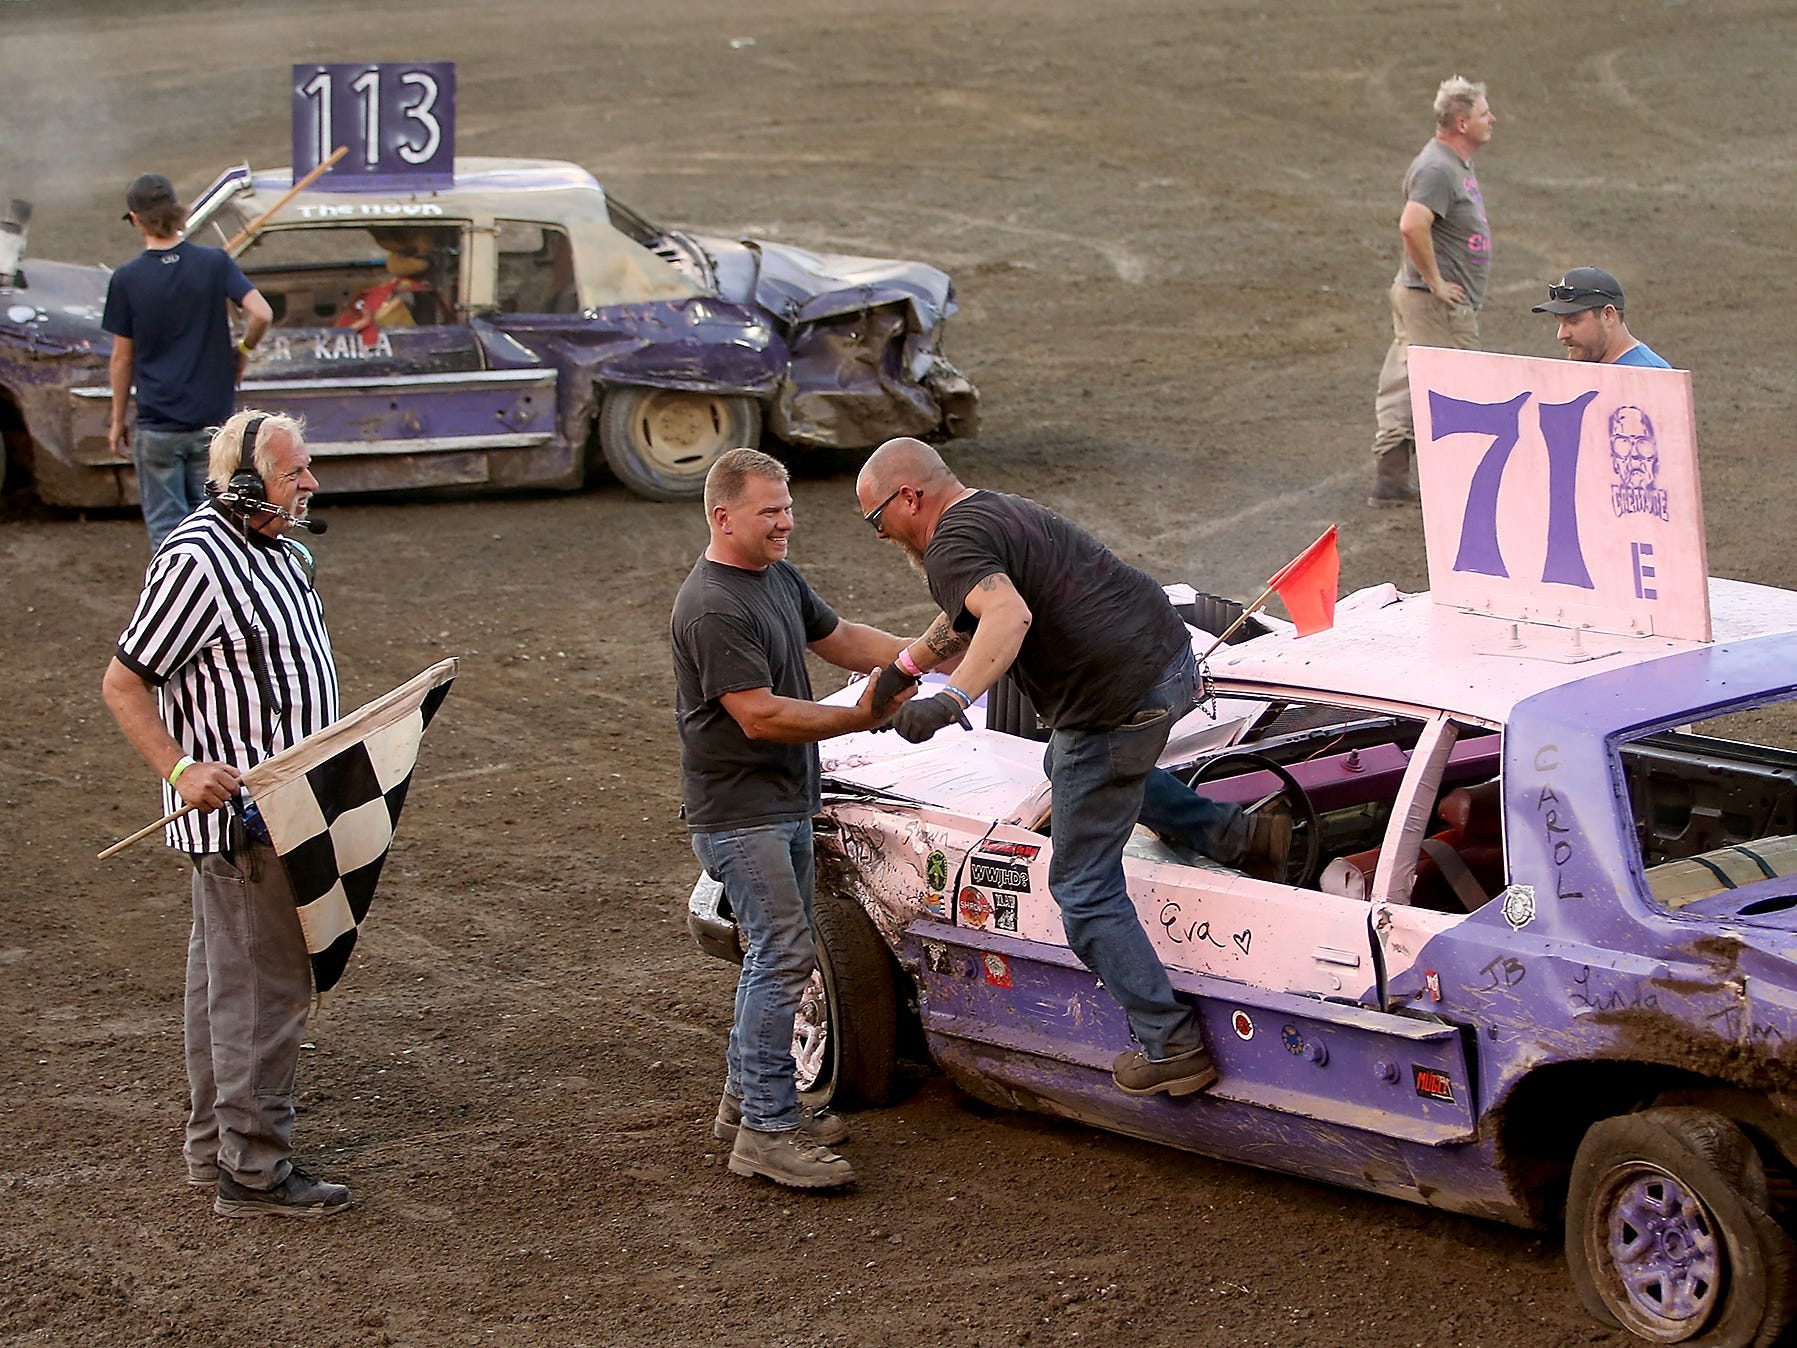 Drivers Dan Pieze (center) congratulates and gives a hand to finale winner Geof Higham (right) as he exits his car in the middle of Thunderbird Arena on Saturday, July 28, 2018.